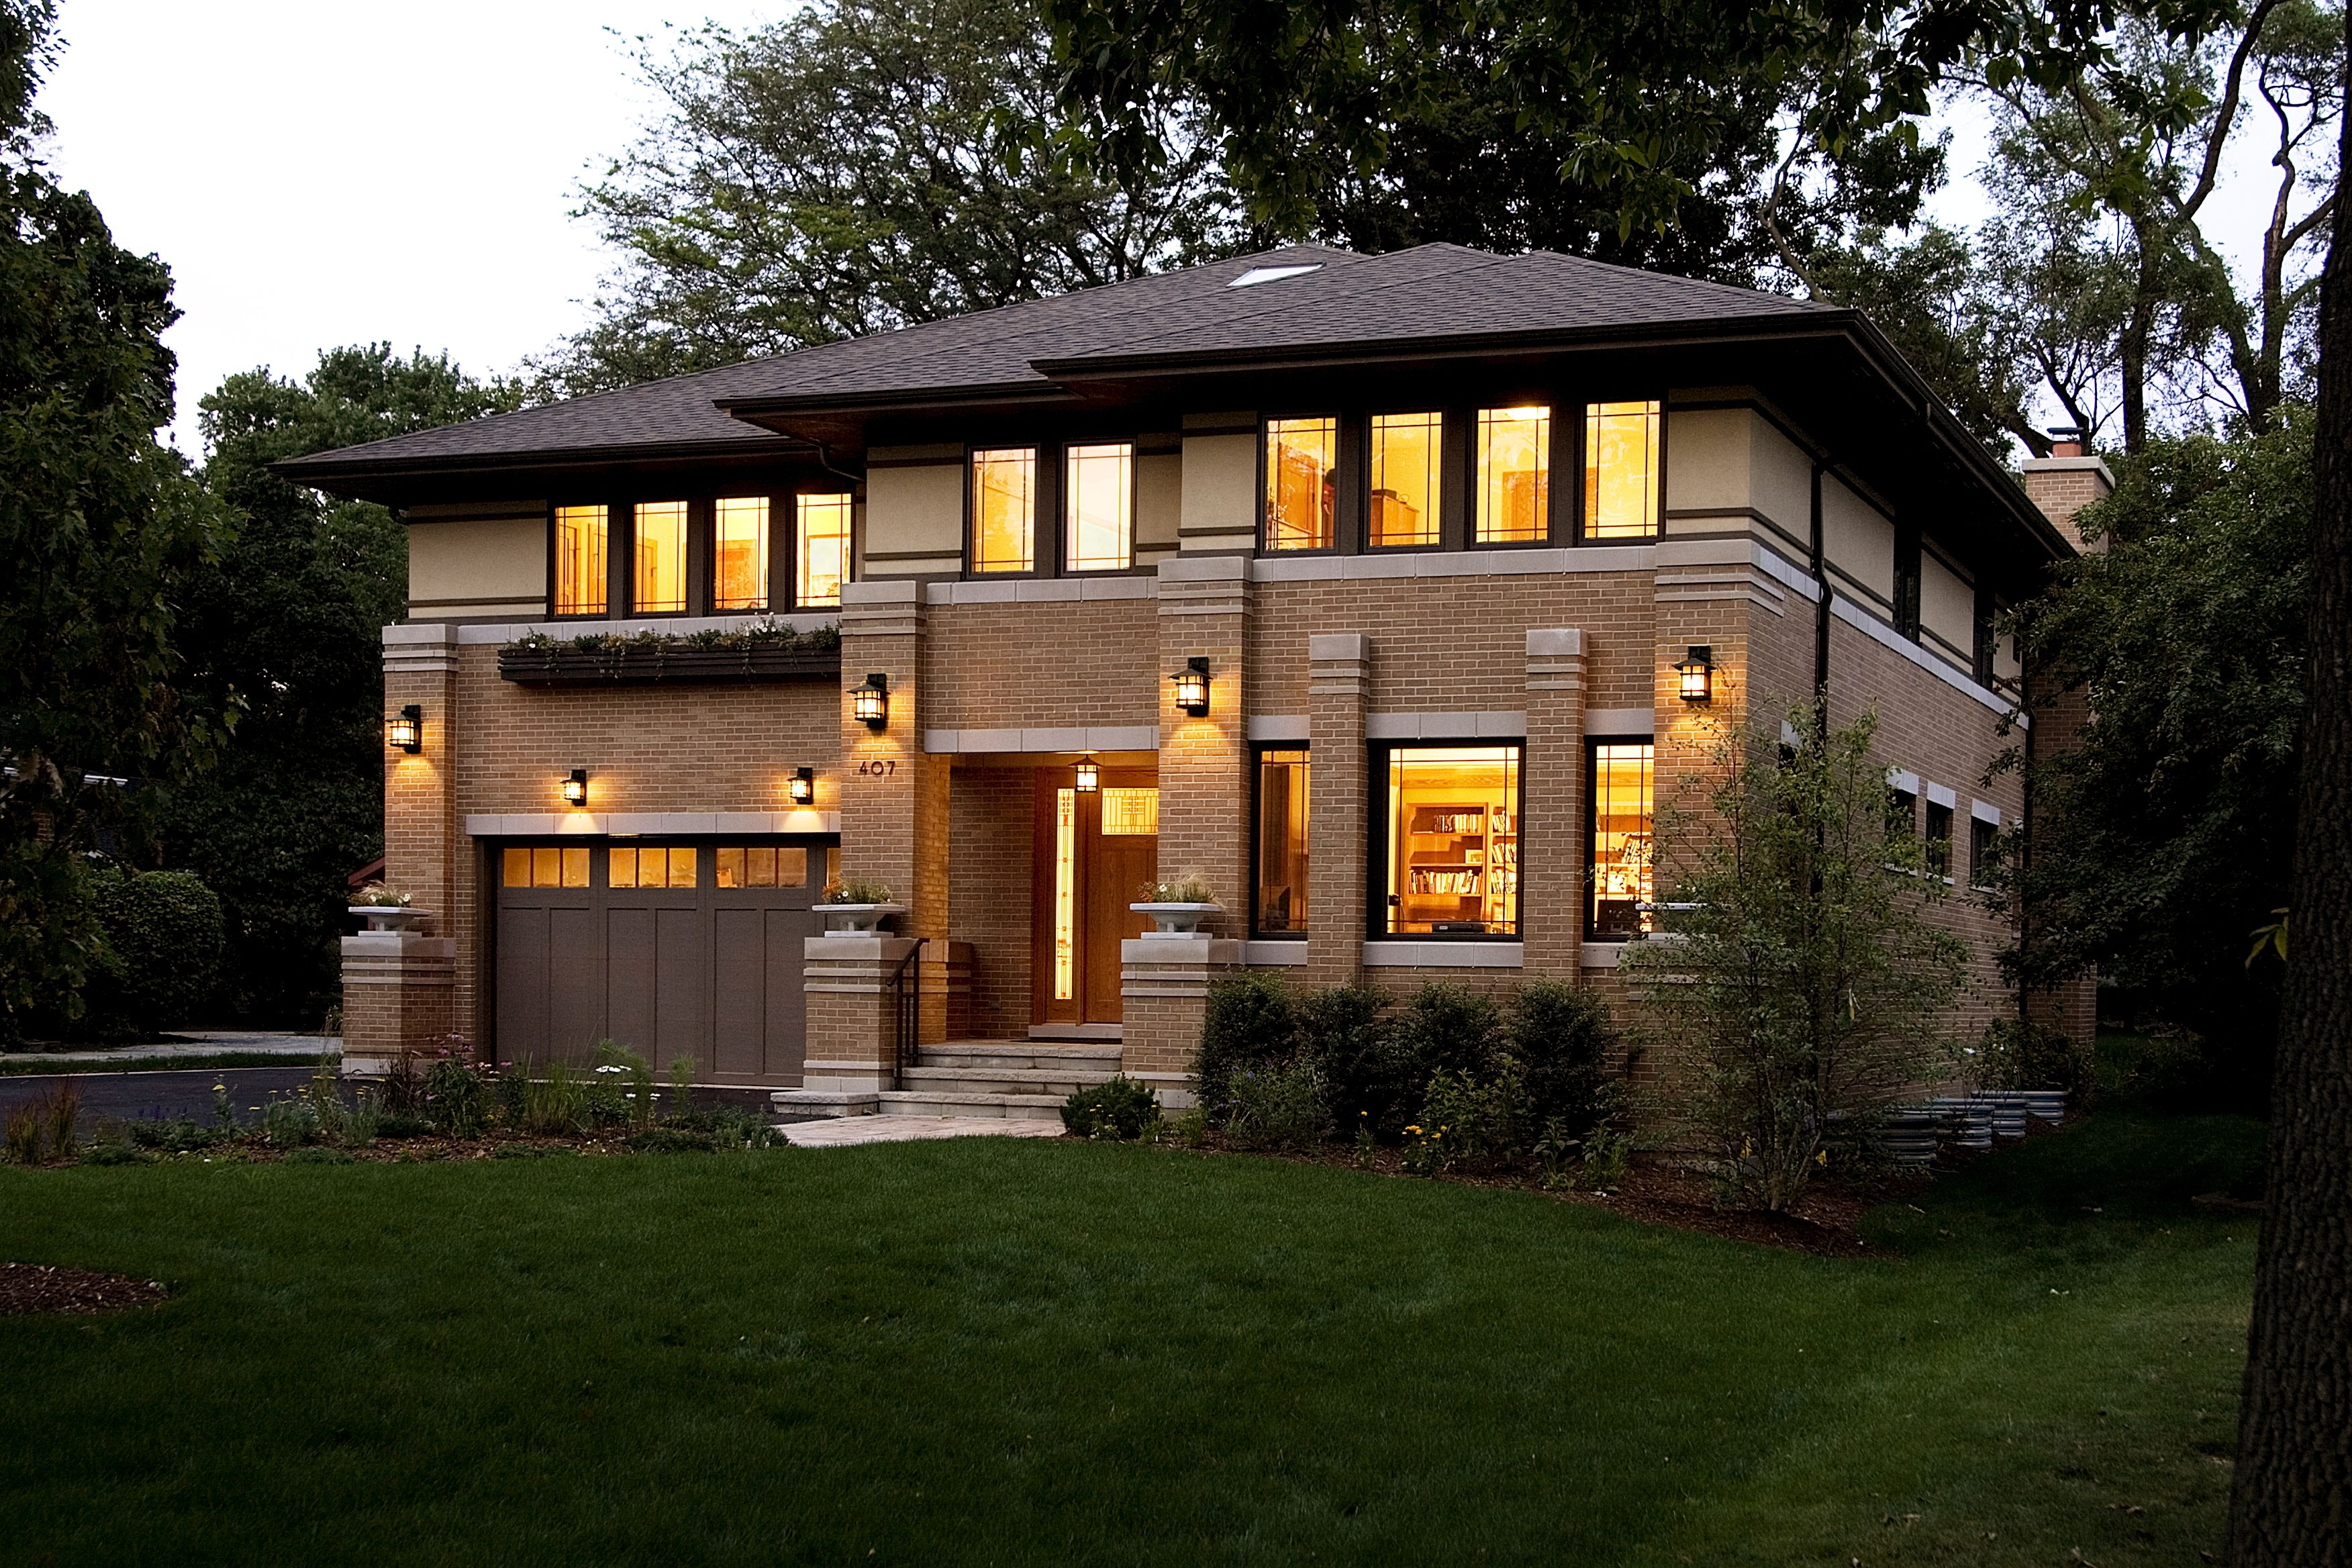 New prairie style house west studio frank lloyd wright for Modern looking homes